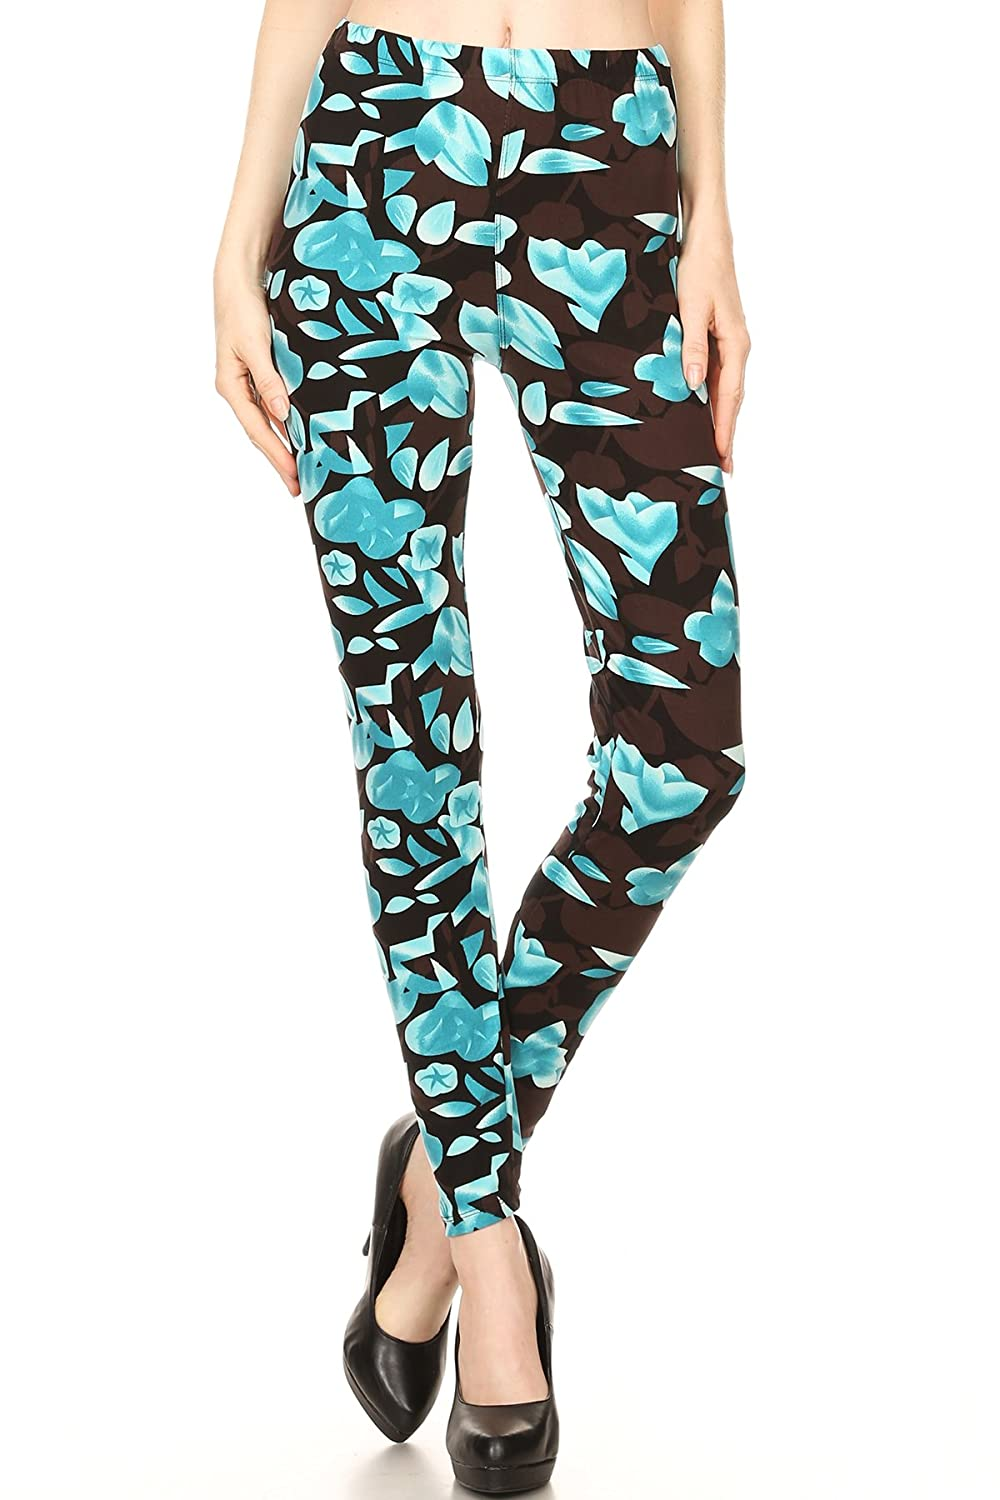 0bdfe04bcc 92% Polyester/8% Spandex Imported Abstract blue flower pattern printed  leggings for regular size. Comfortable elastic waist band.